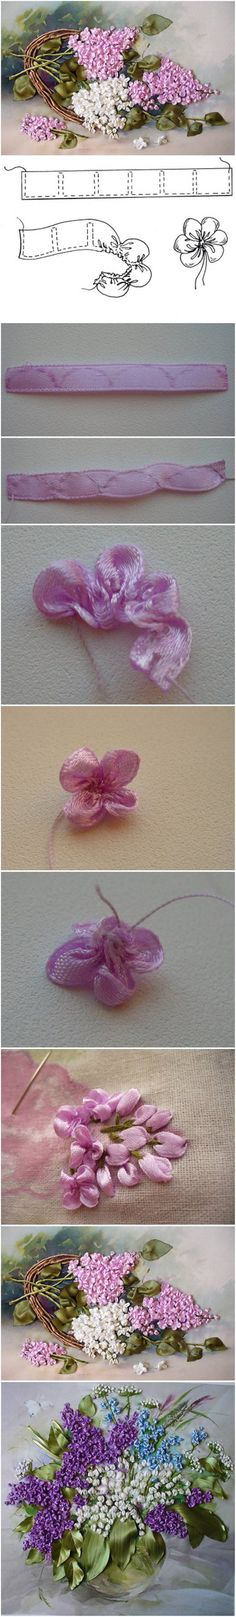 Como fazer fita Bordado Lilac Flores do ofício da flor da fita bordados - / How to Make Embroidery Ribbon Lilac Flowers craft ribbon flower embroidery -